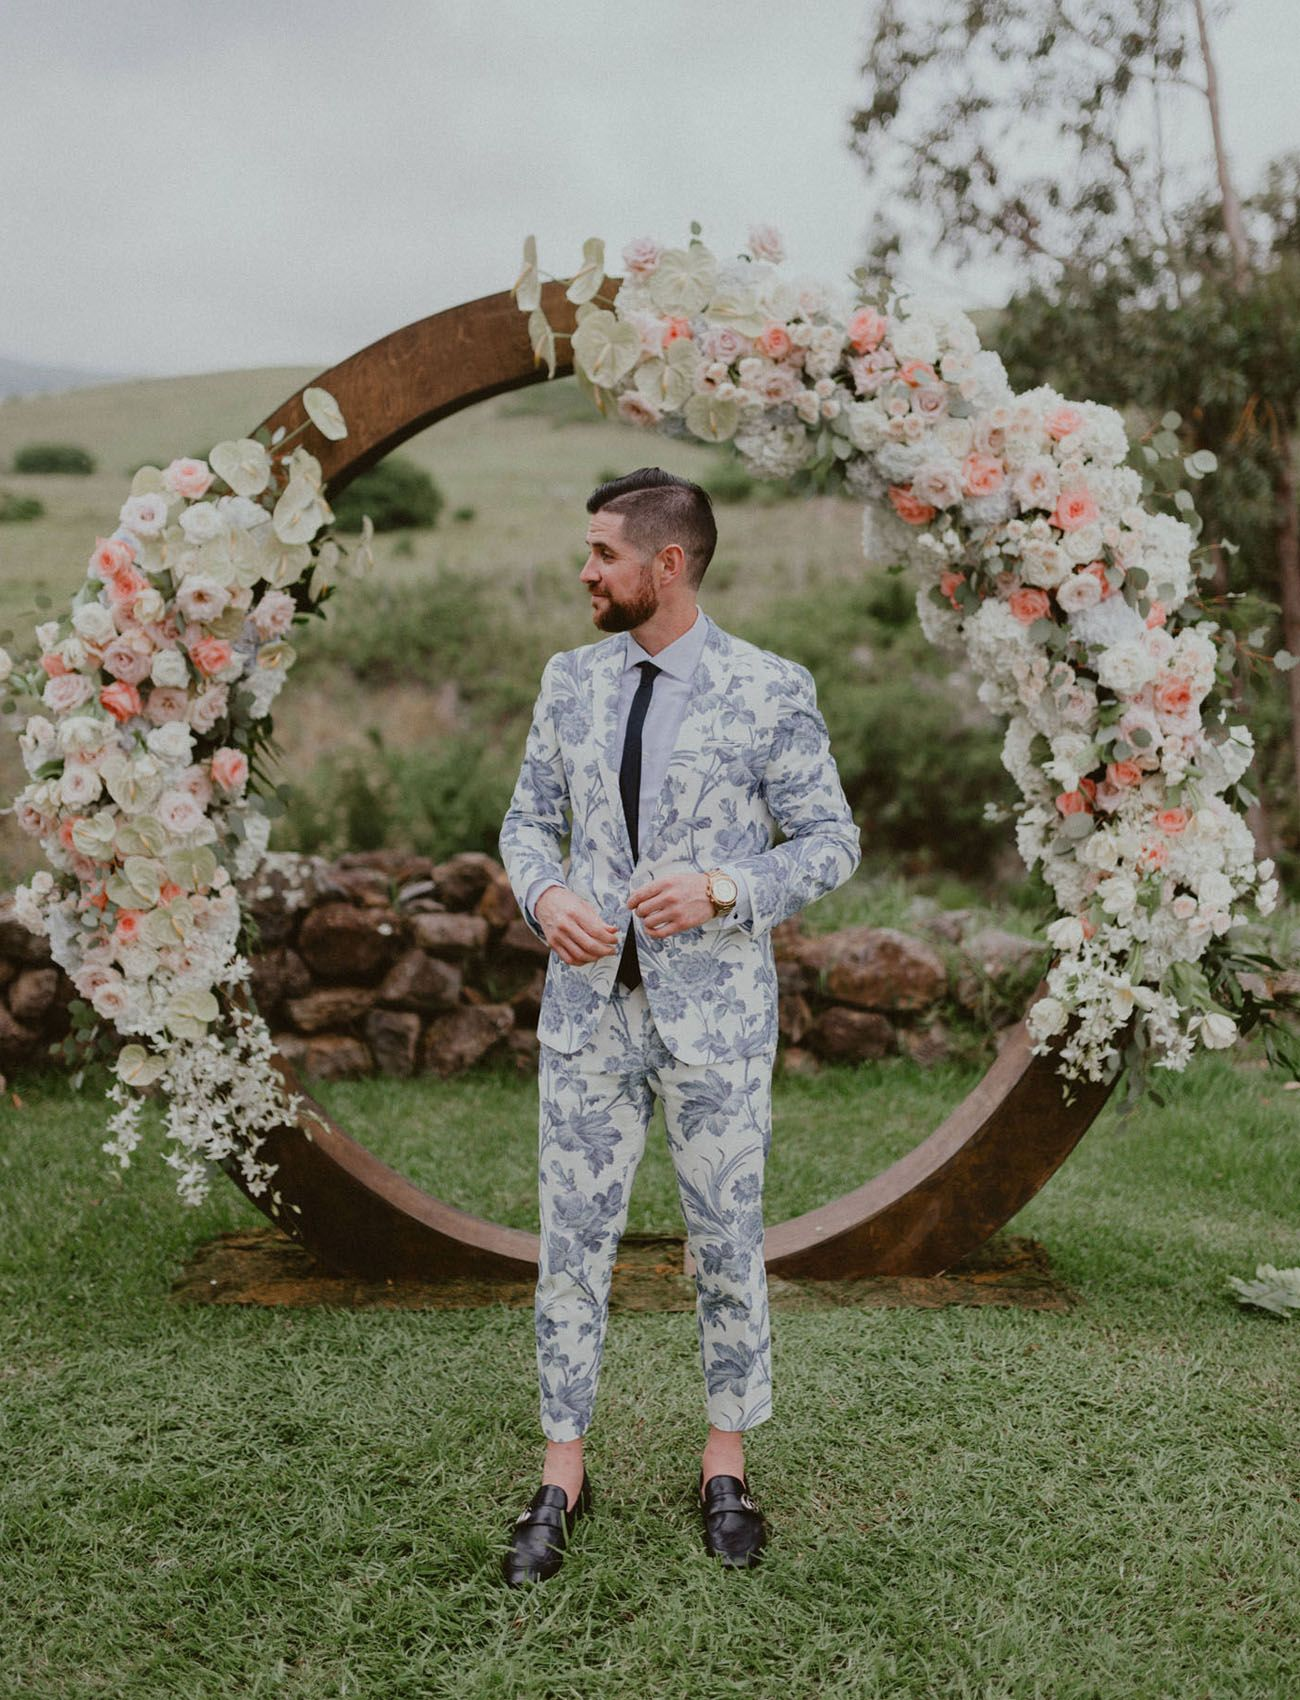 54fc6849127 On Trend  Grooms Rocking Floral Suits — Find Your Fave! - Green Wedding  Shoes    Stylish Groom Suit and Tux Options for the Fashionable Hipster